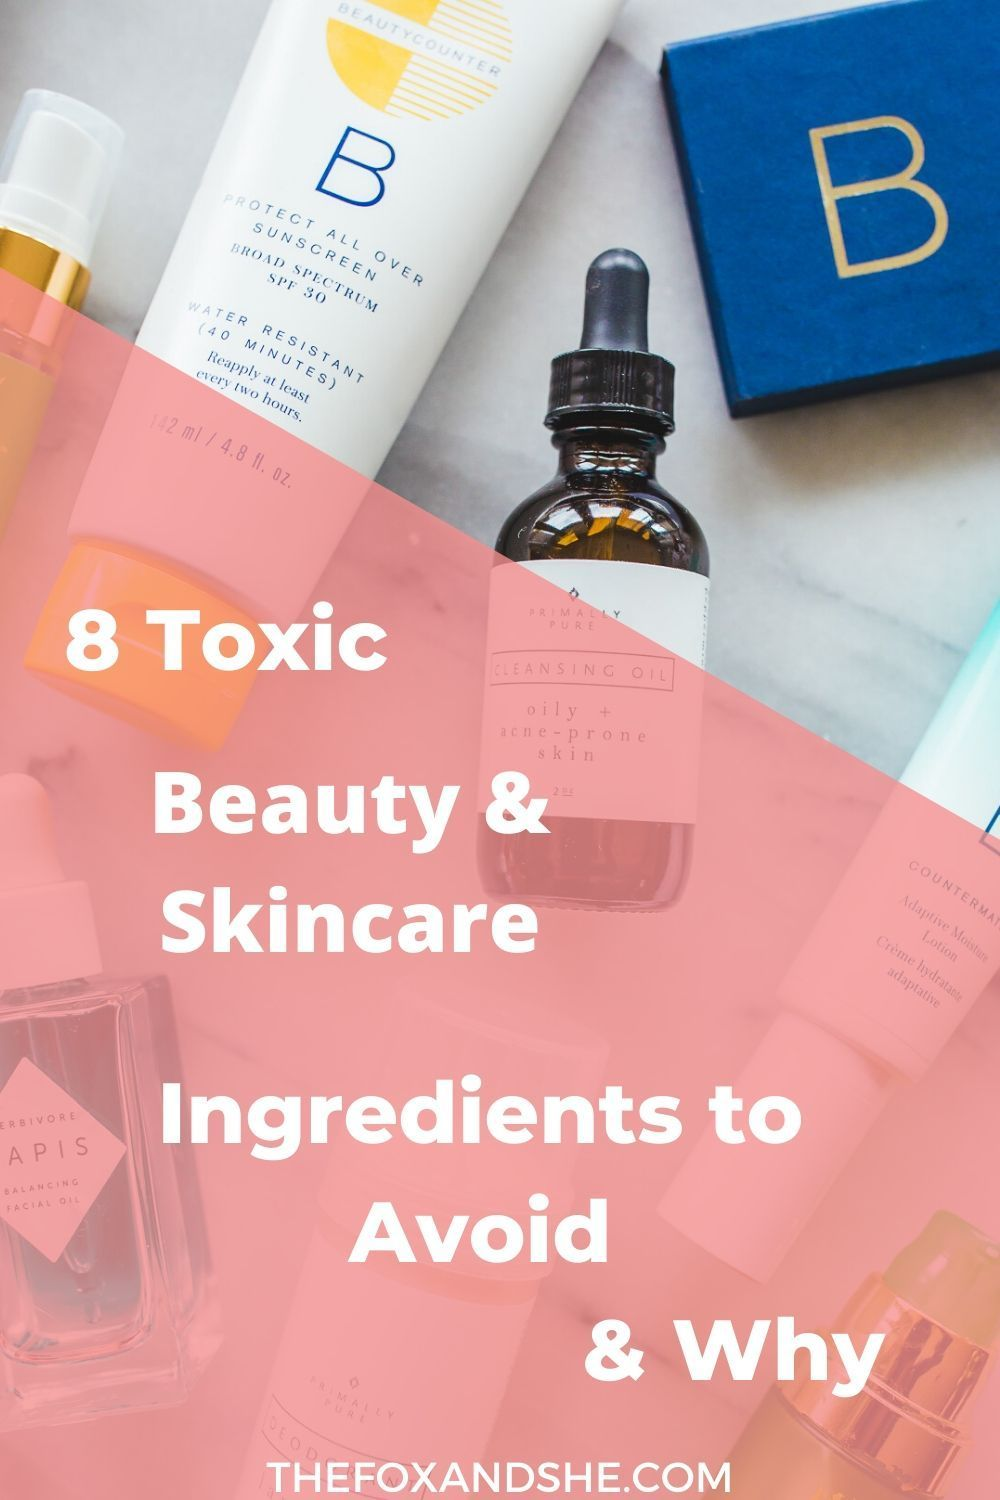 8 Toxic Skincare Ingredients To Avoid The Fox She Natural Beauty In 2020 Skincare Ingredients Simple Skincare Routine Skin Care